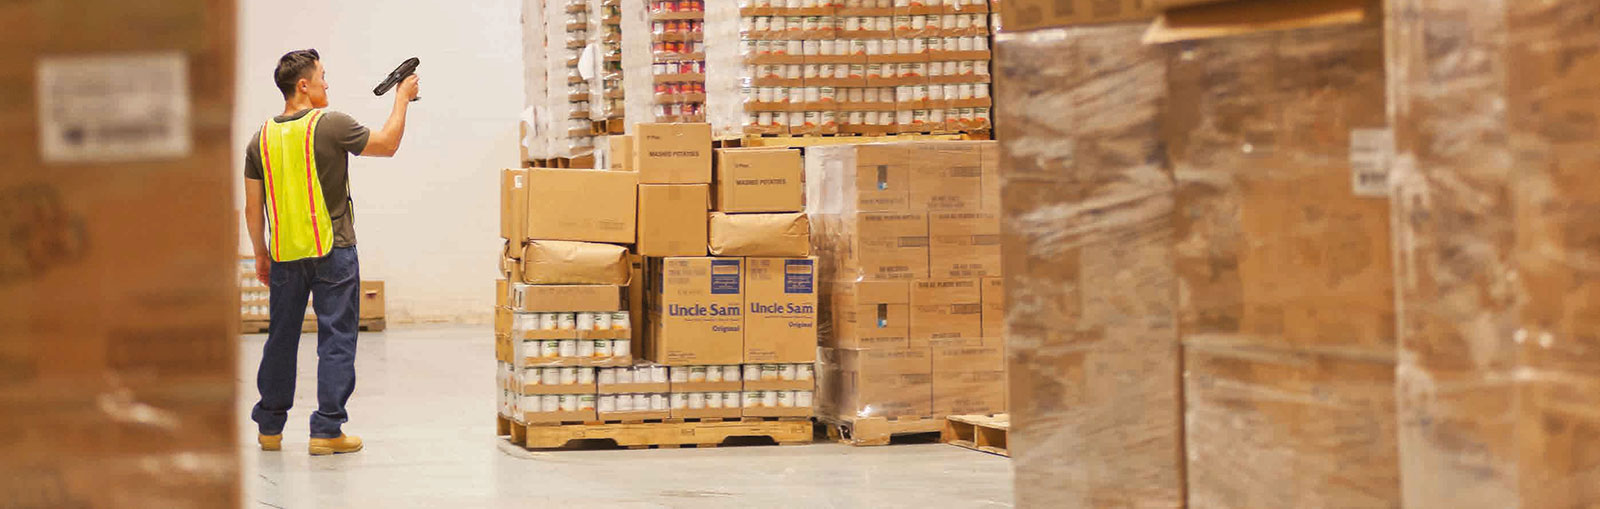 Start optimizing your warehouse for the future